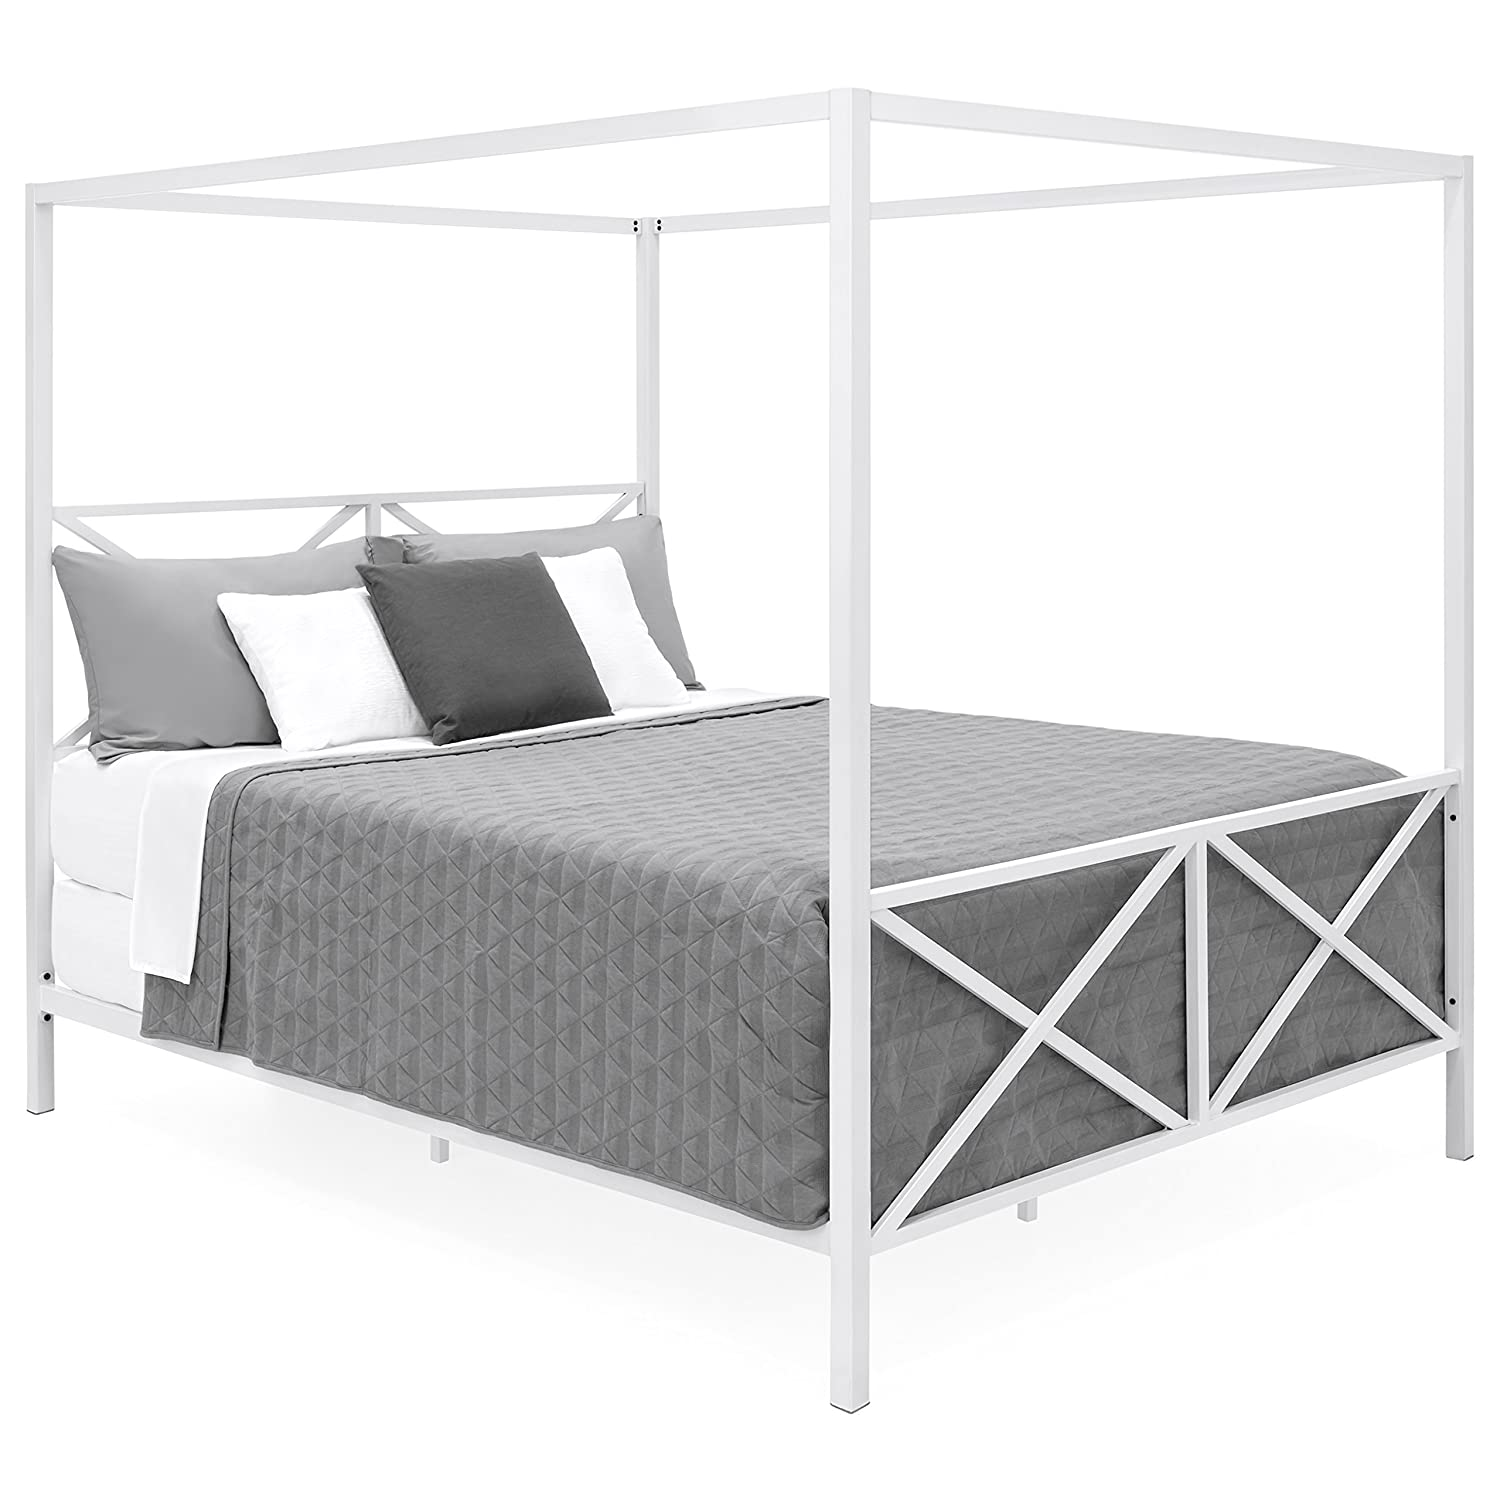 Best Choice Products Modern 4 Post Canopy Queen Bed w Metal Frame, Mattress Support, Headboard, Footboard – White